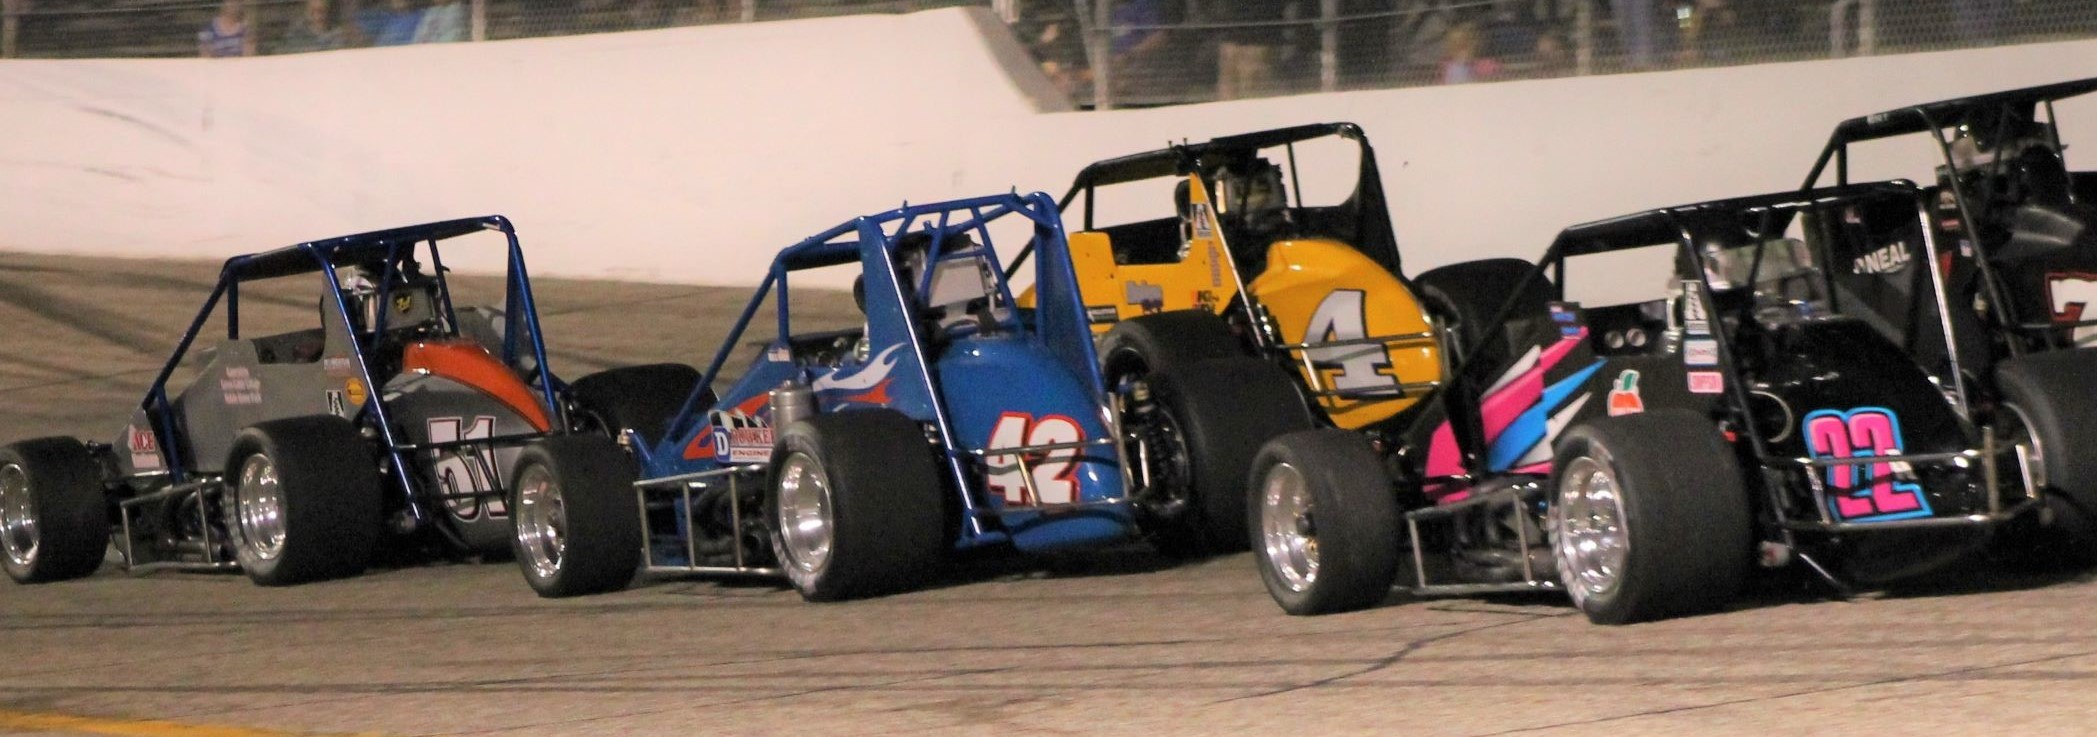 AUTO VALUE NON-WING SUPER SPRINTS with TLM, SS and Zoo Stock